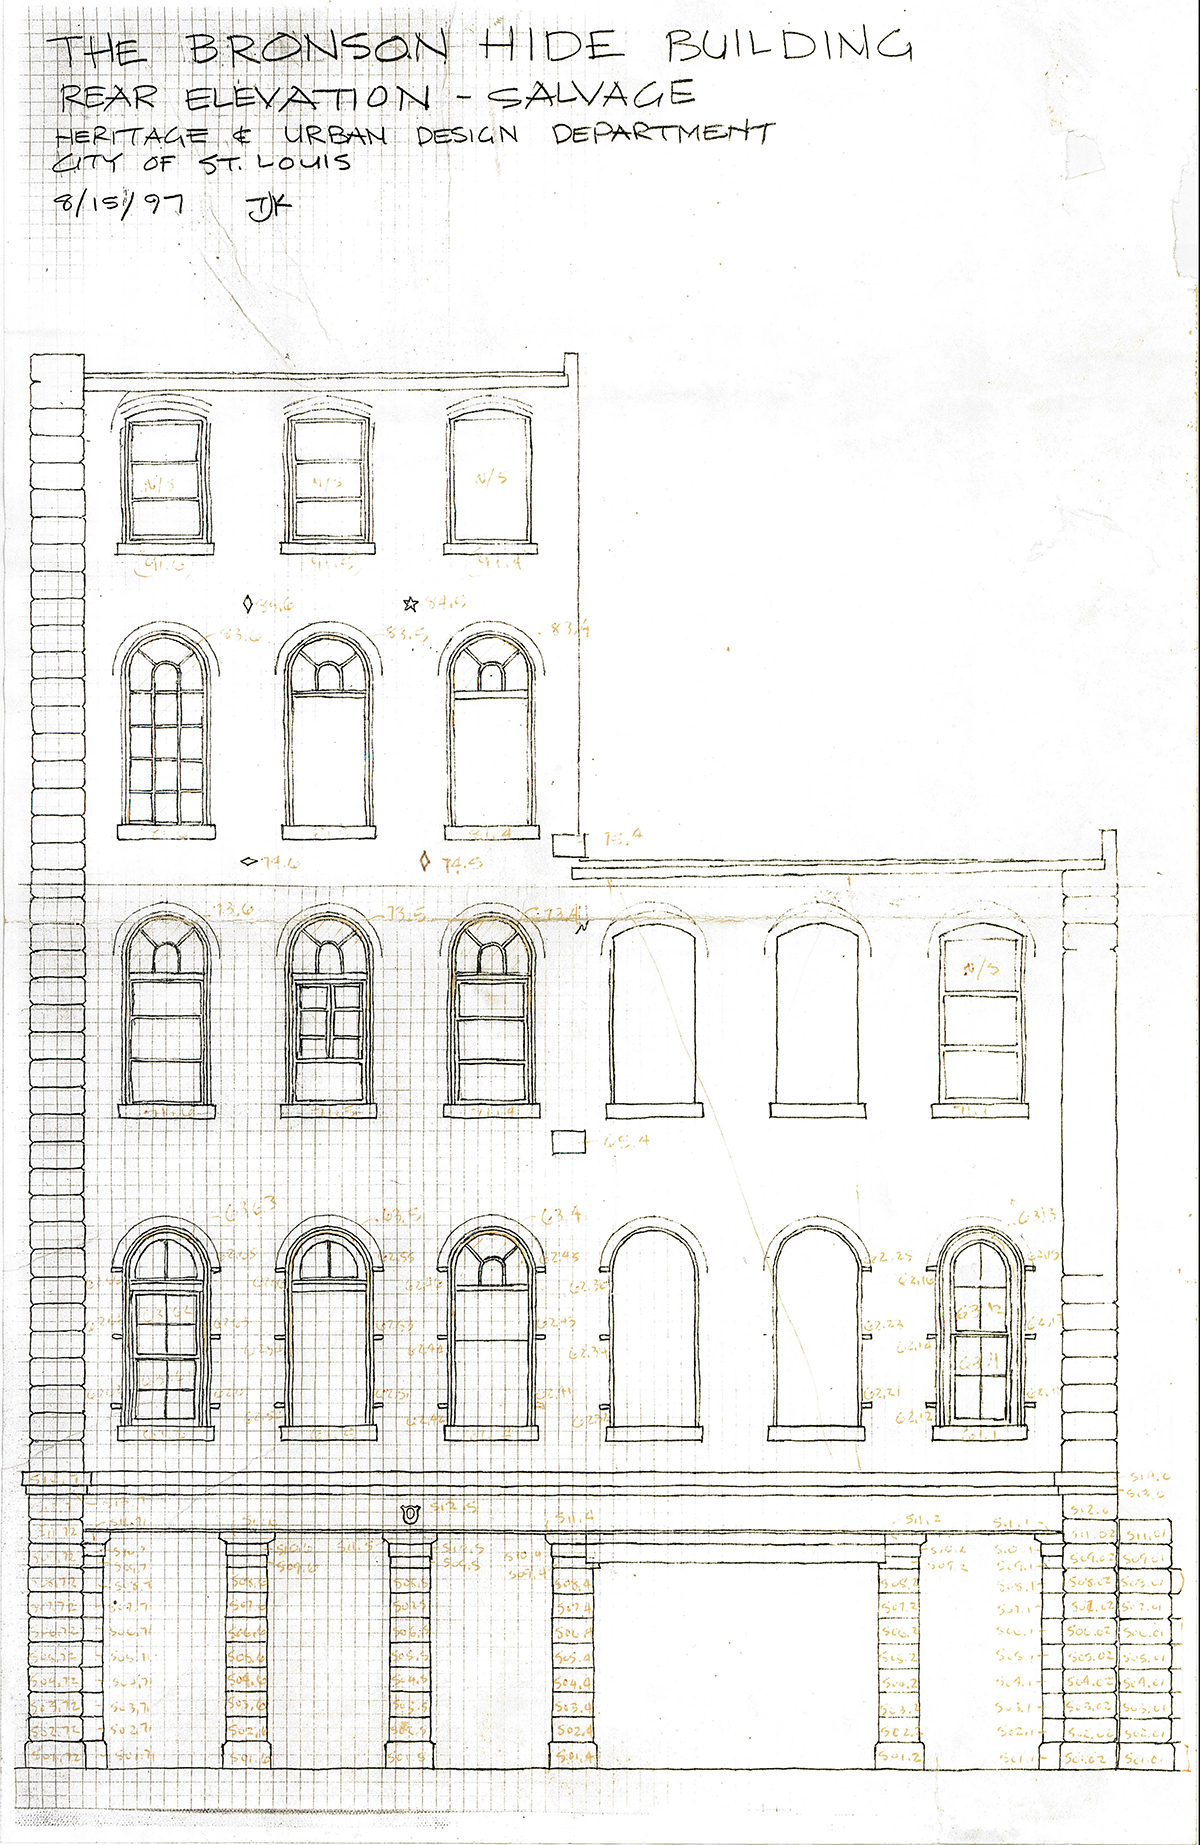 Bronson Hide: Iron Store Front, drawing of rear elevation.